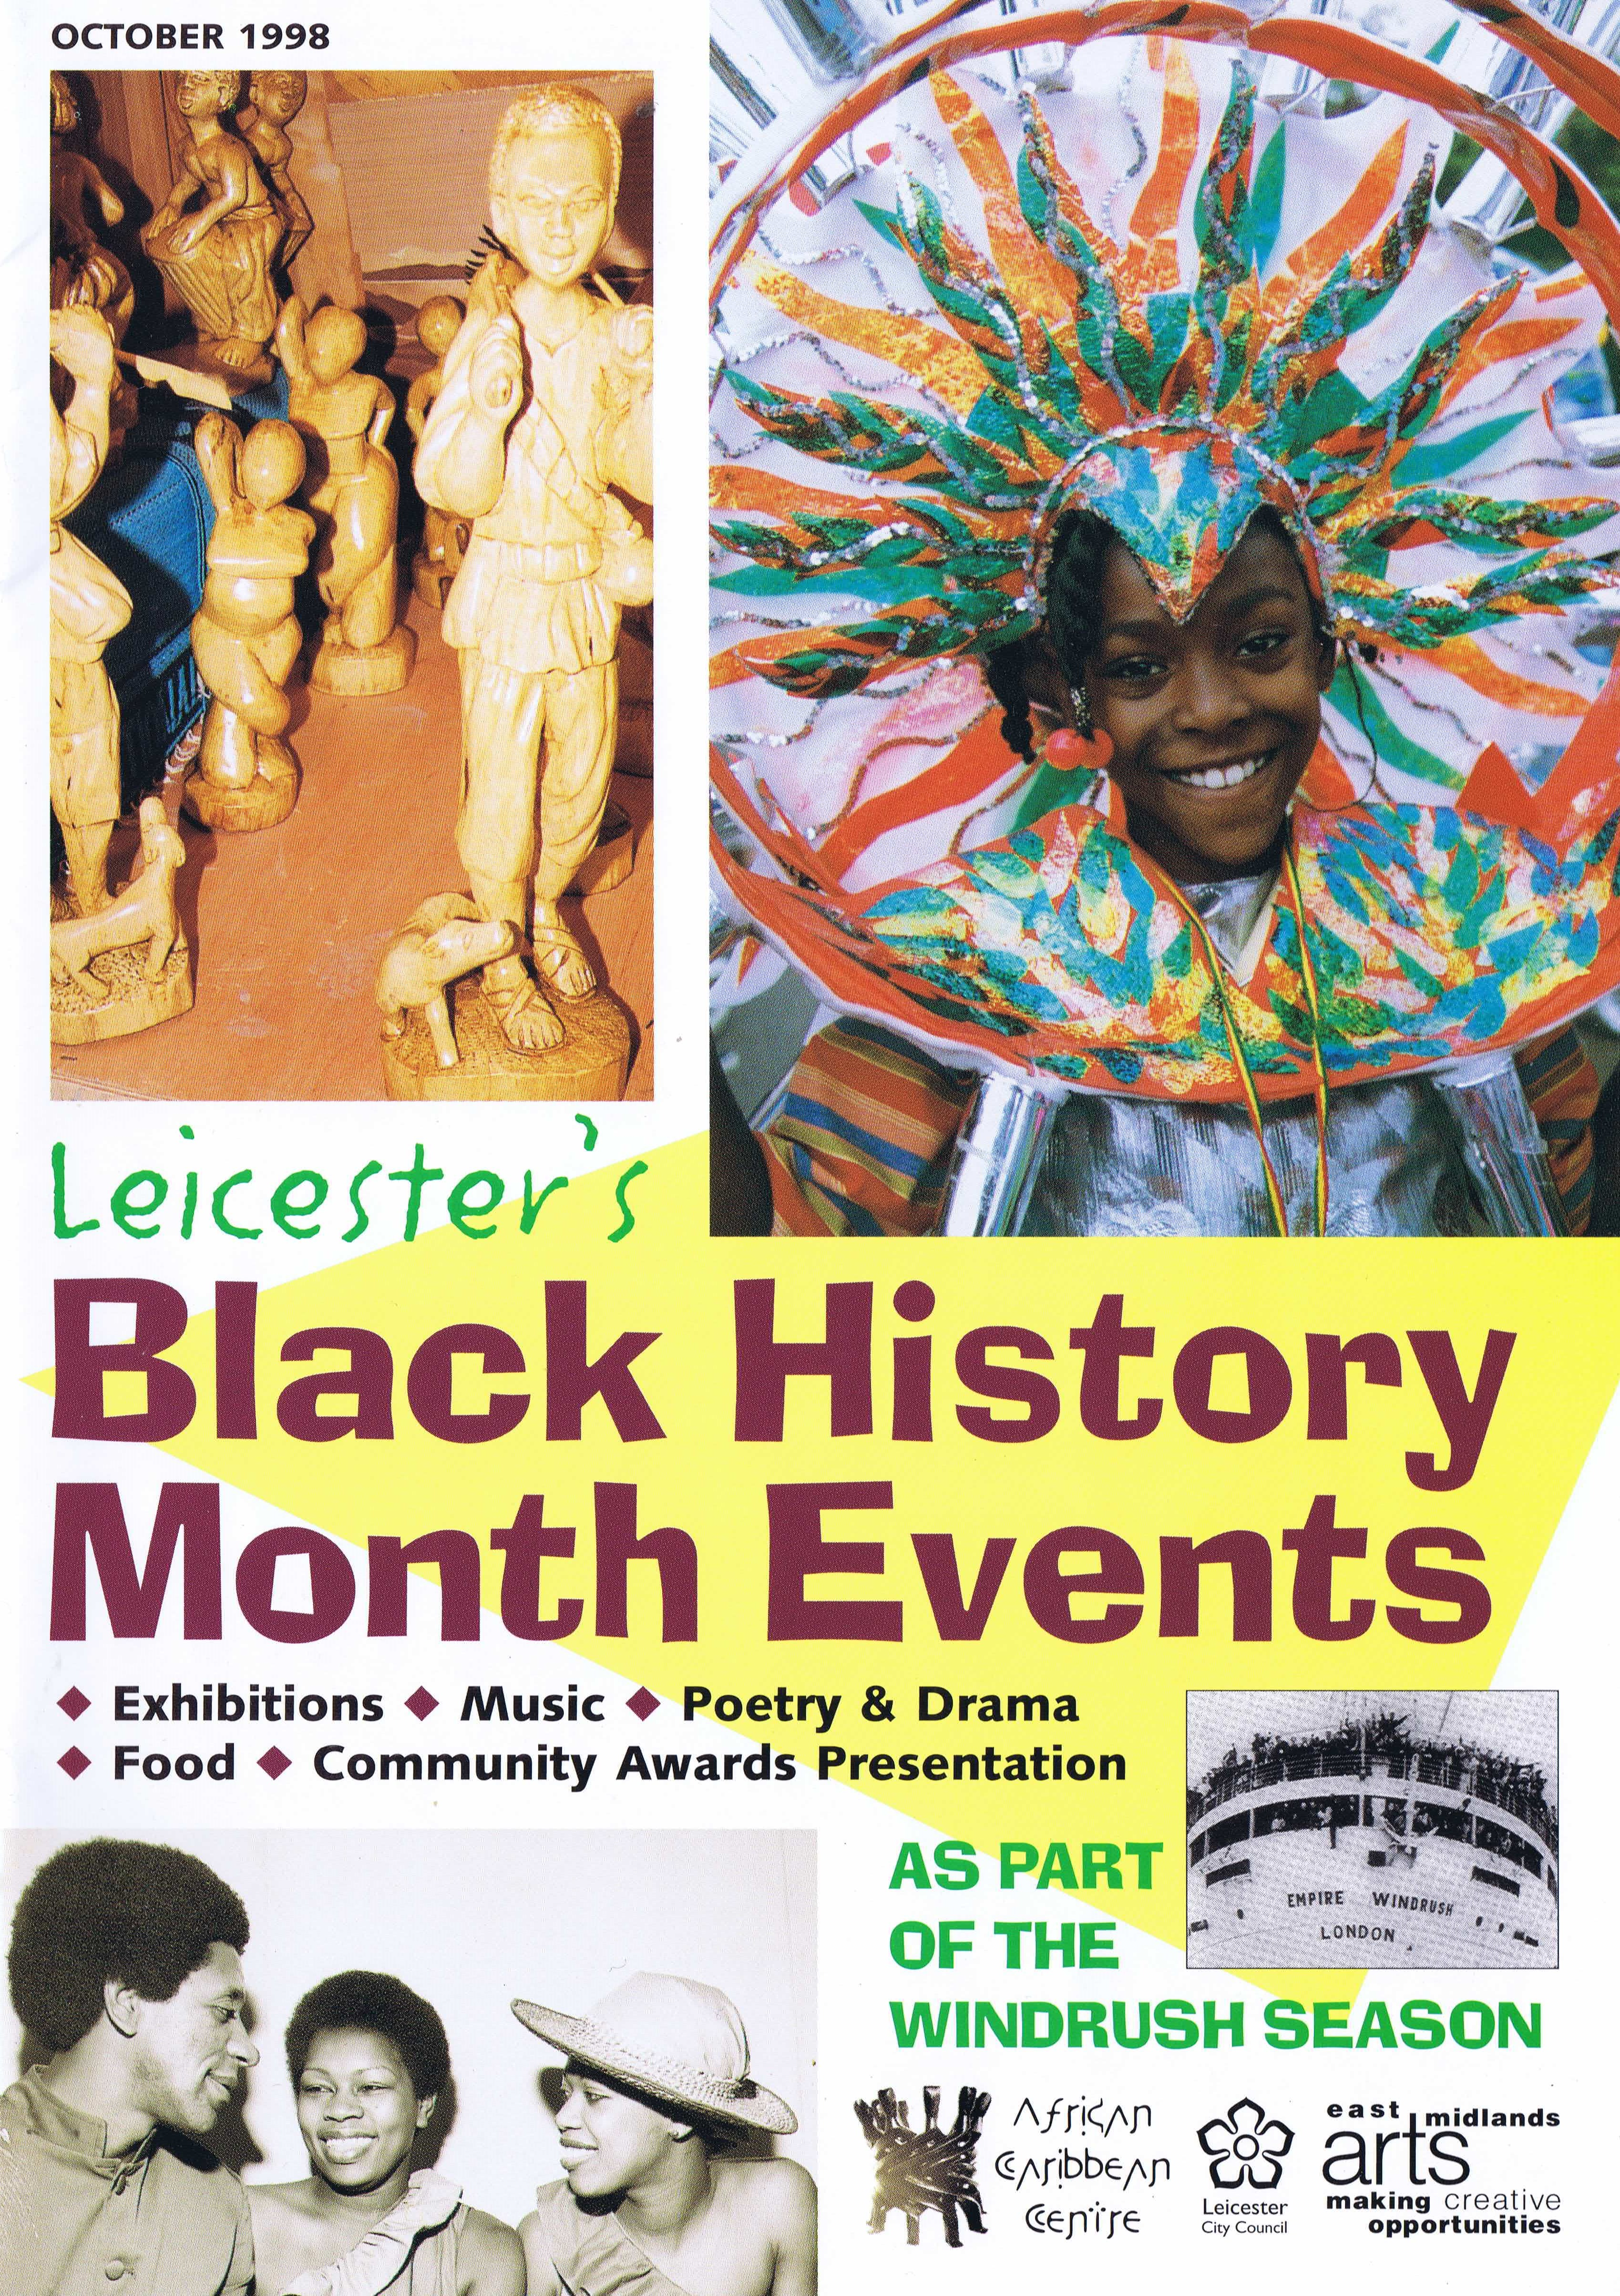 BHM Brochure 1998 — Page Banner